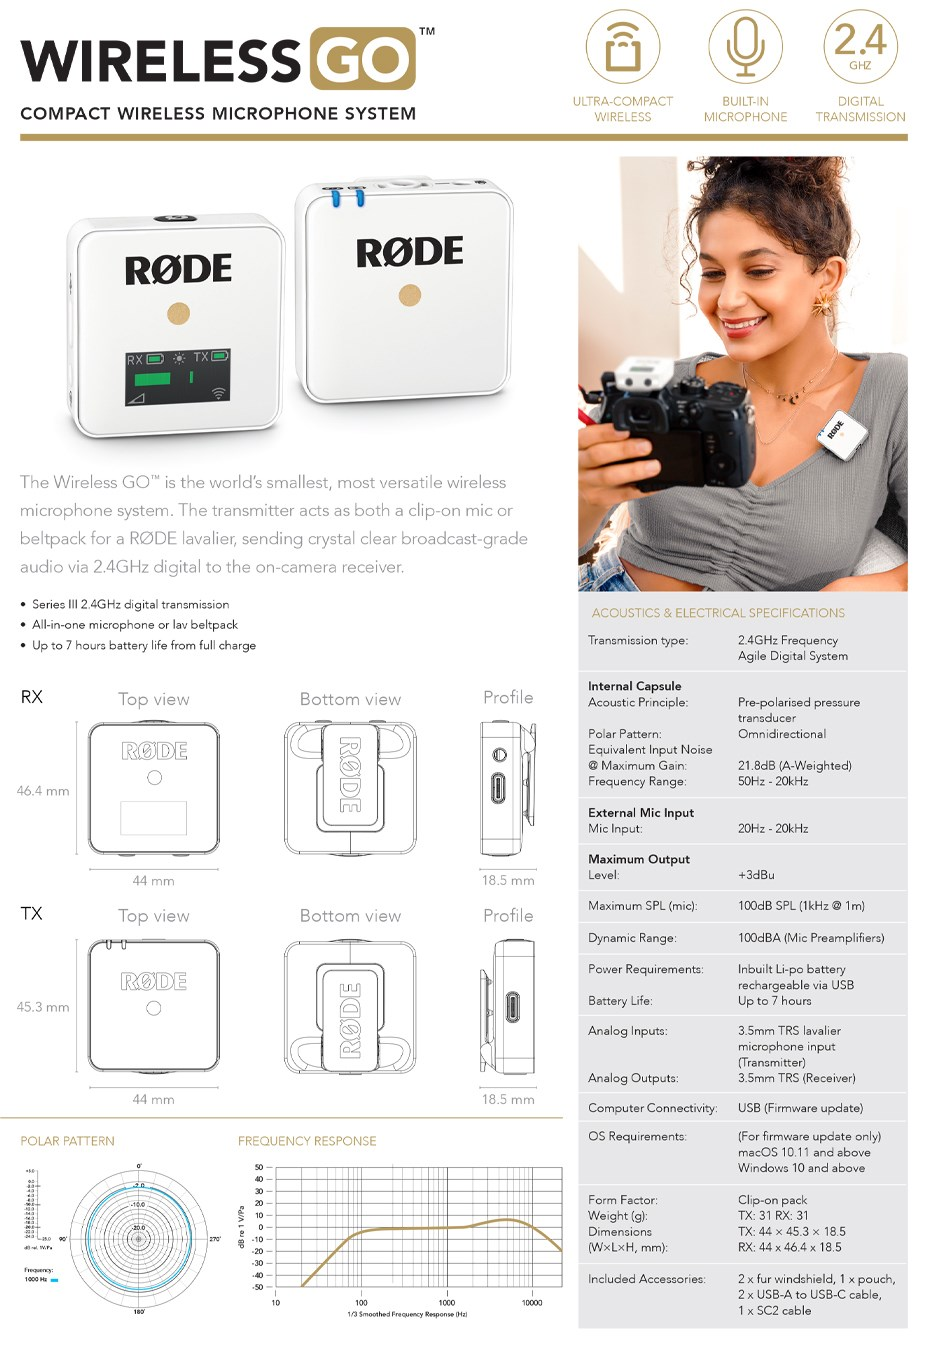 RODE Wireless GO Compact Wireless Microphone System - White - Overview 1